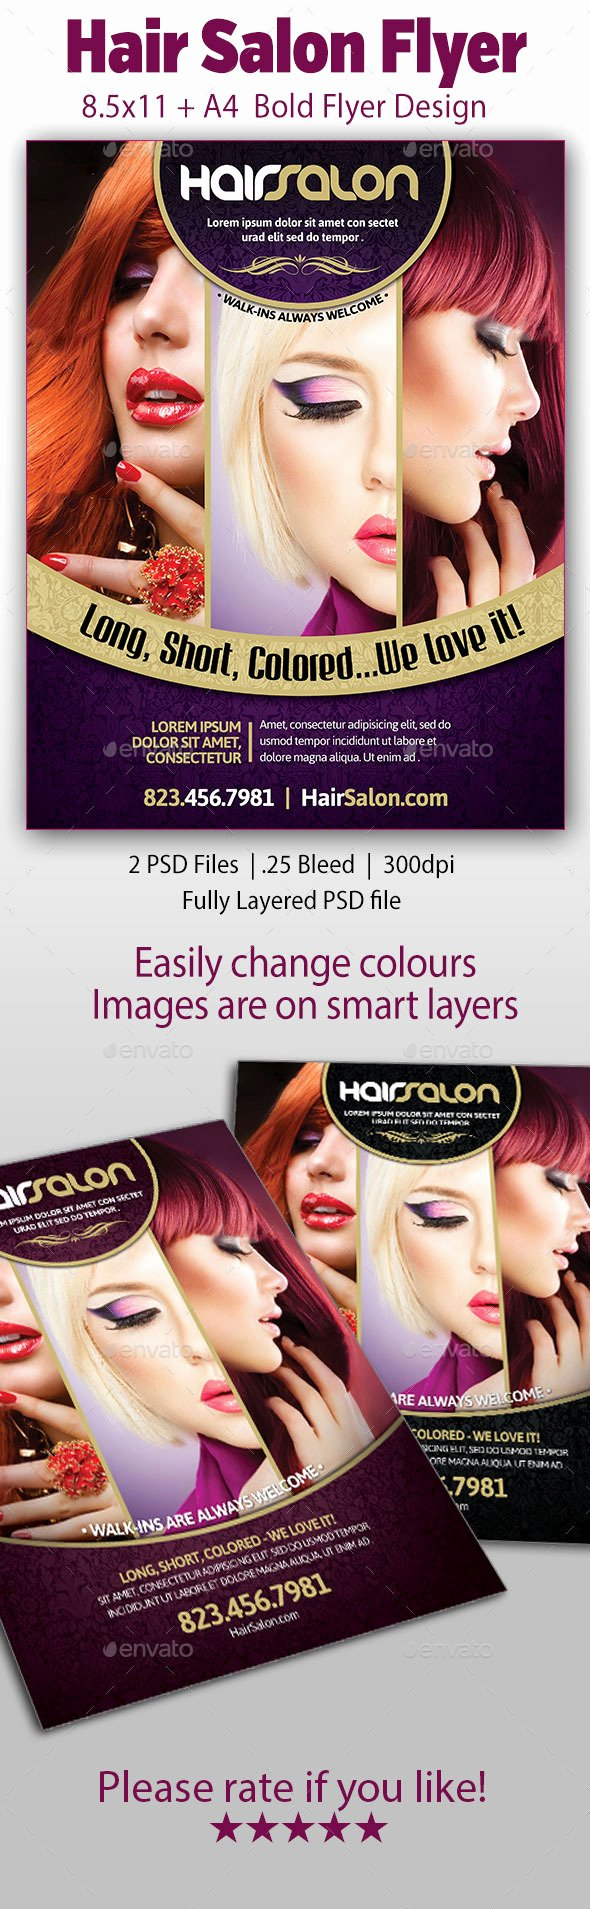 Hair Salon Flyer Free File Designer